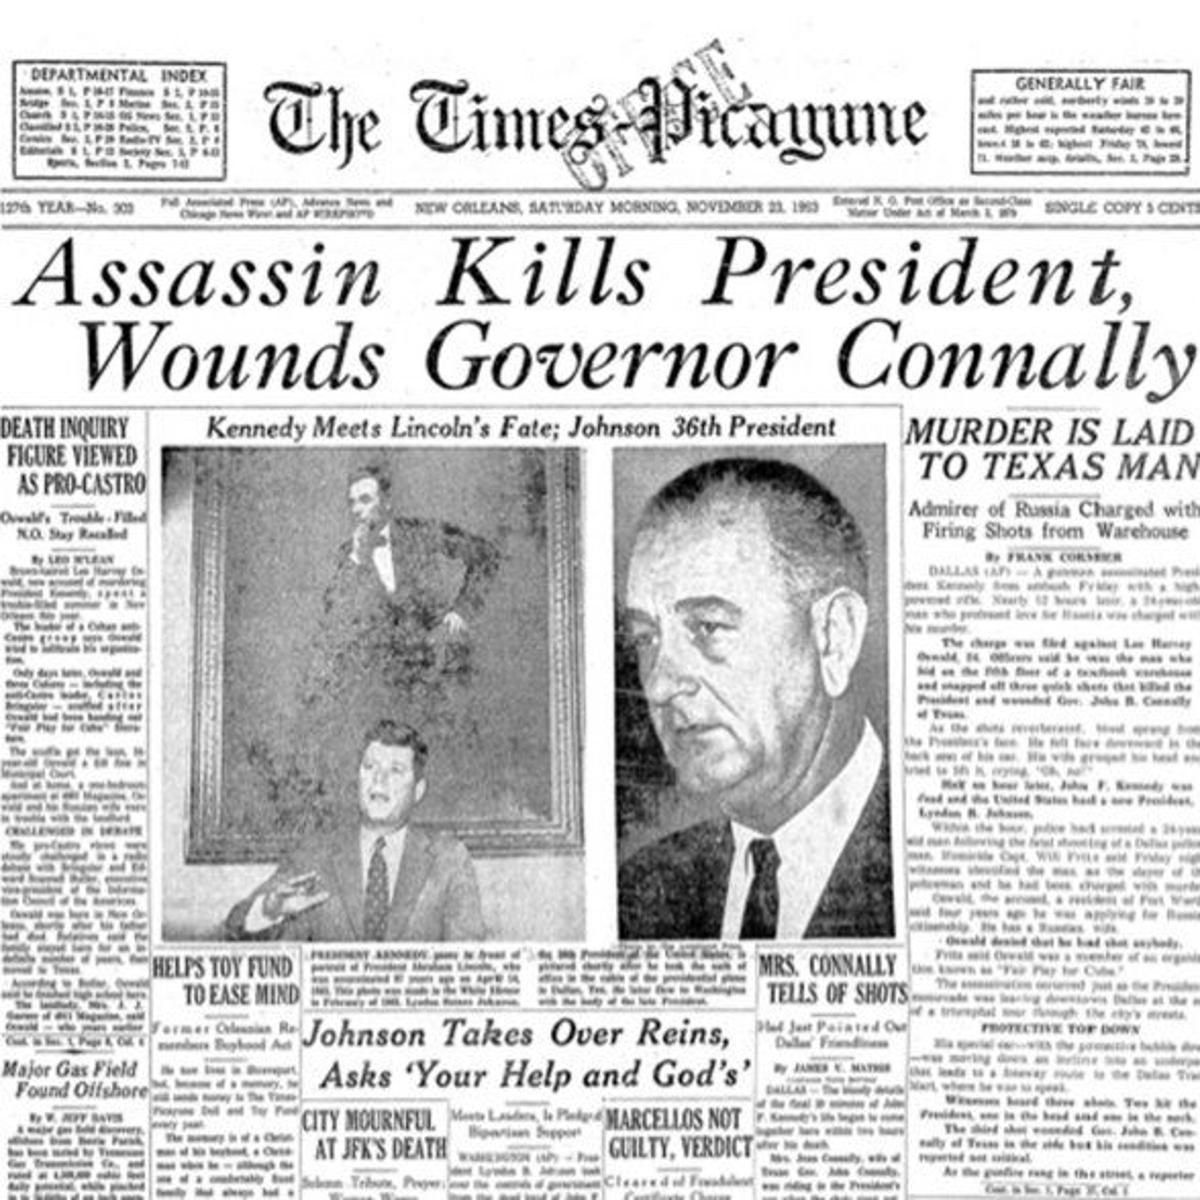 JFK and New Orleans 1963: The Times-Picayune chronicles a